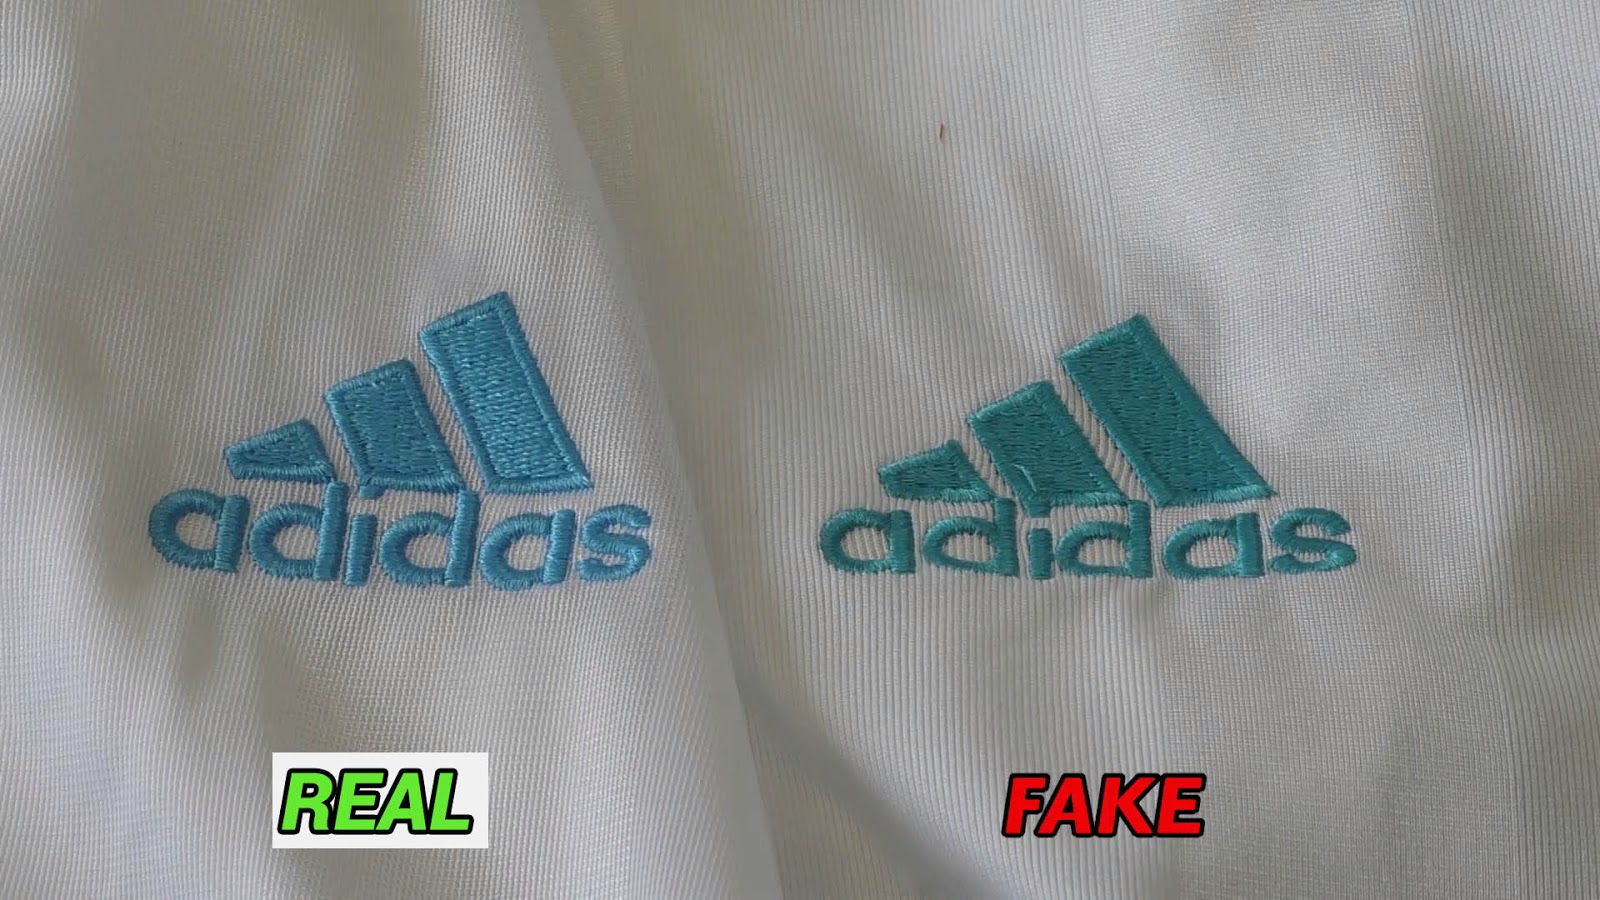 Fake Vs Real Kits What Are The Differences Between And How To